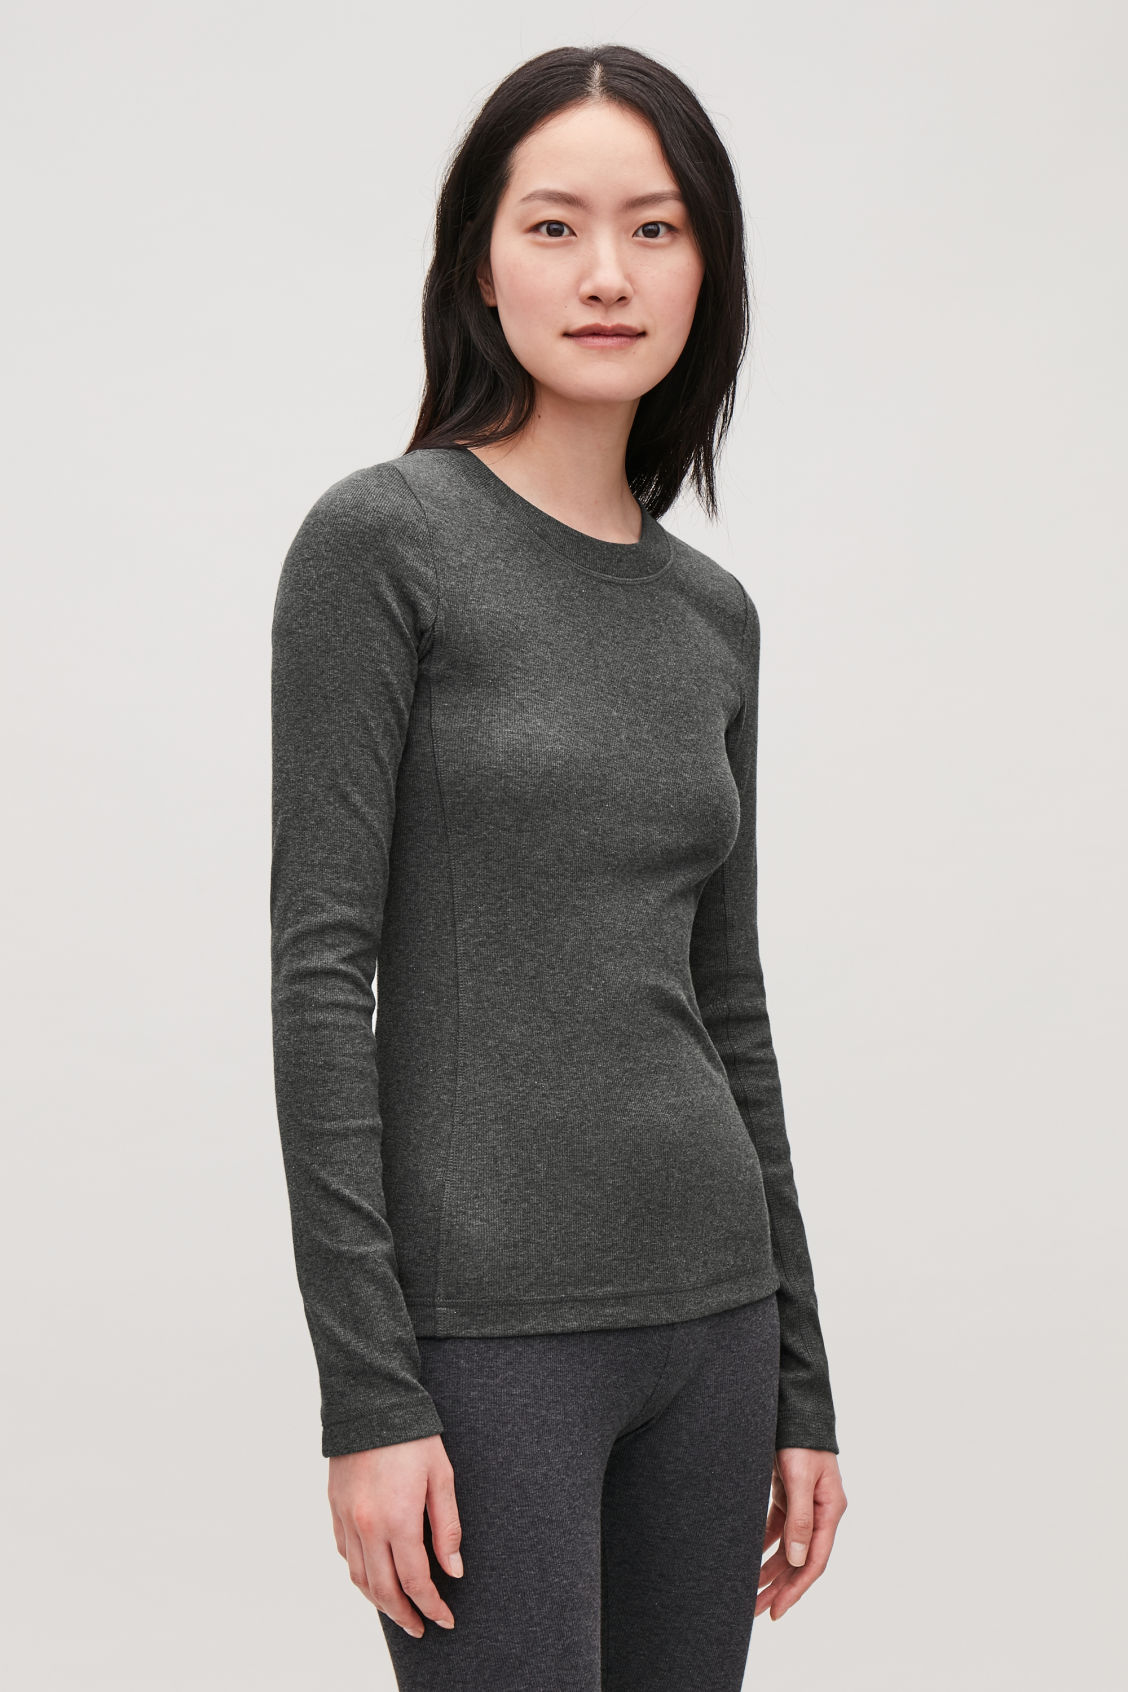 Detailed image of Cos slim ribbed-jersey top in grey